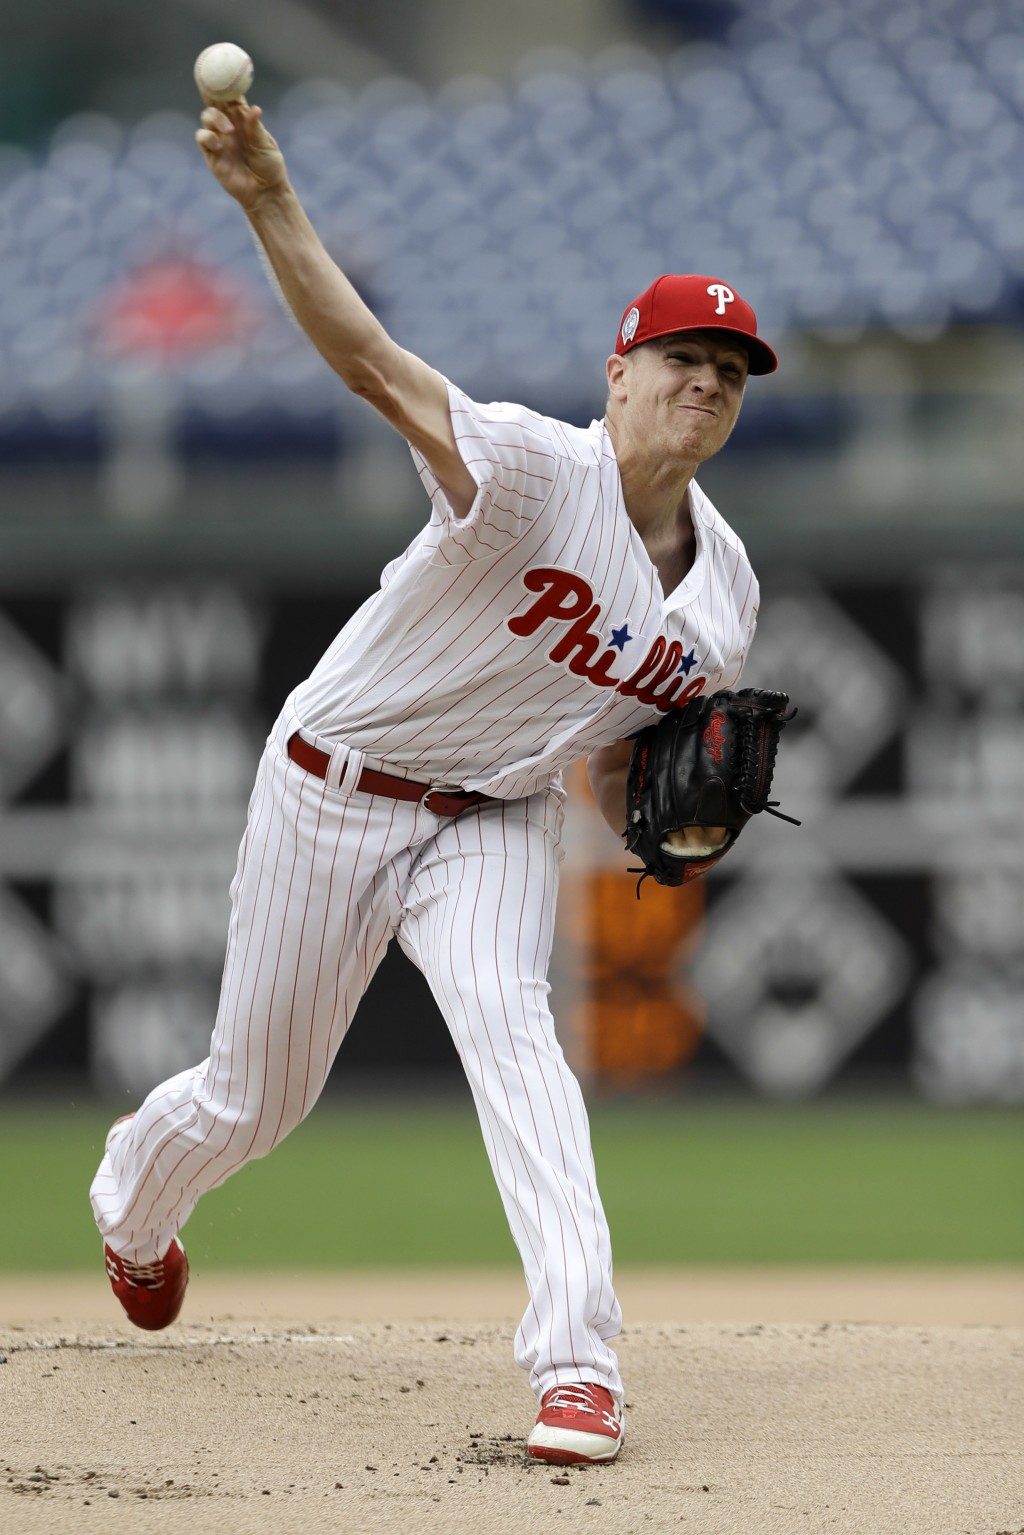 Philadelphia Phillies' Nick Pivetta pitches during the first inning of the first game of a baseball doubleheader against the Washington Nationals, Tue